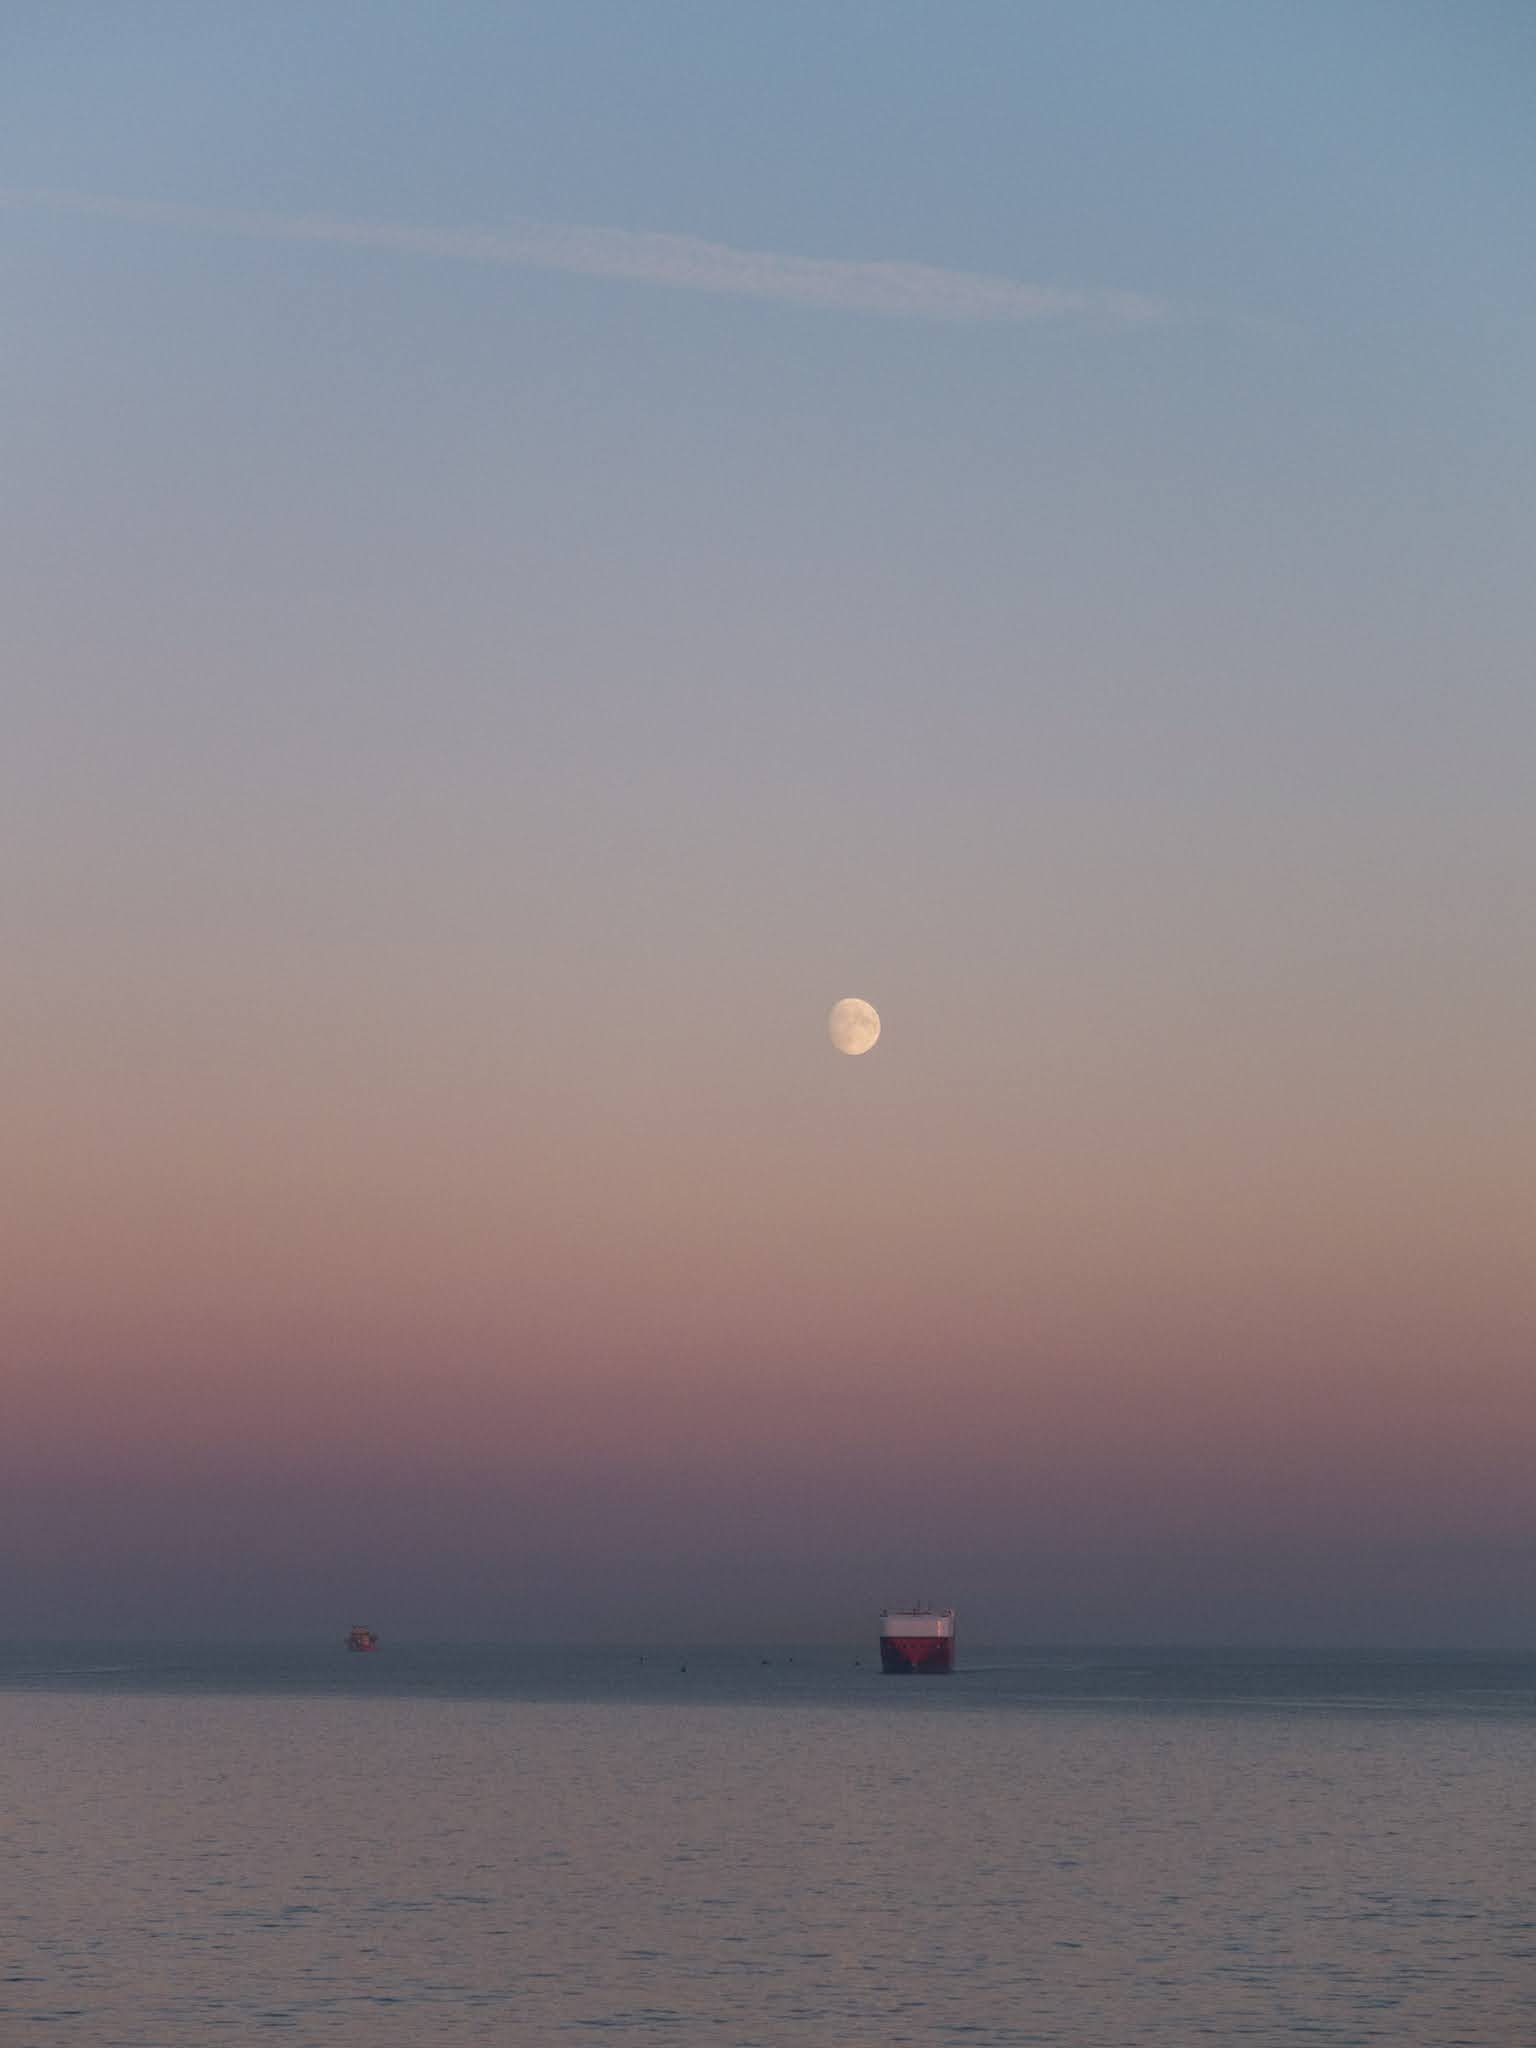 Moon rising over the North Atlantic Ocean with ships in the background.